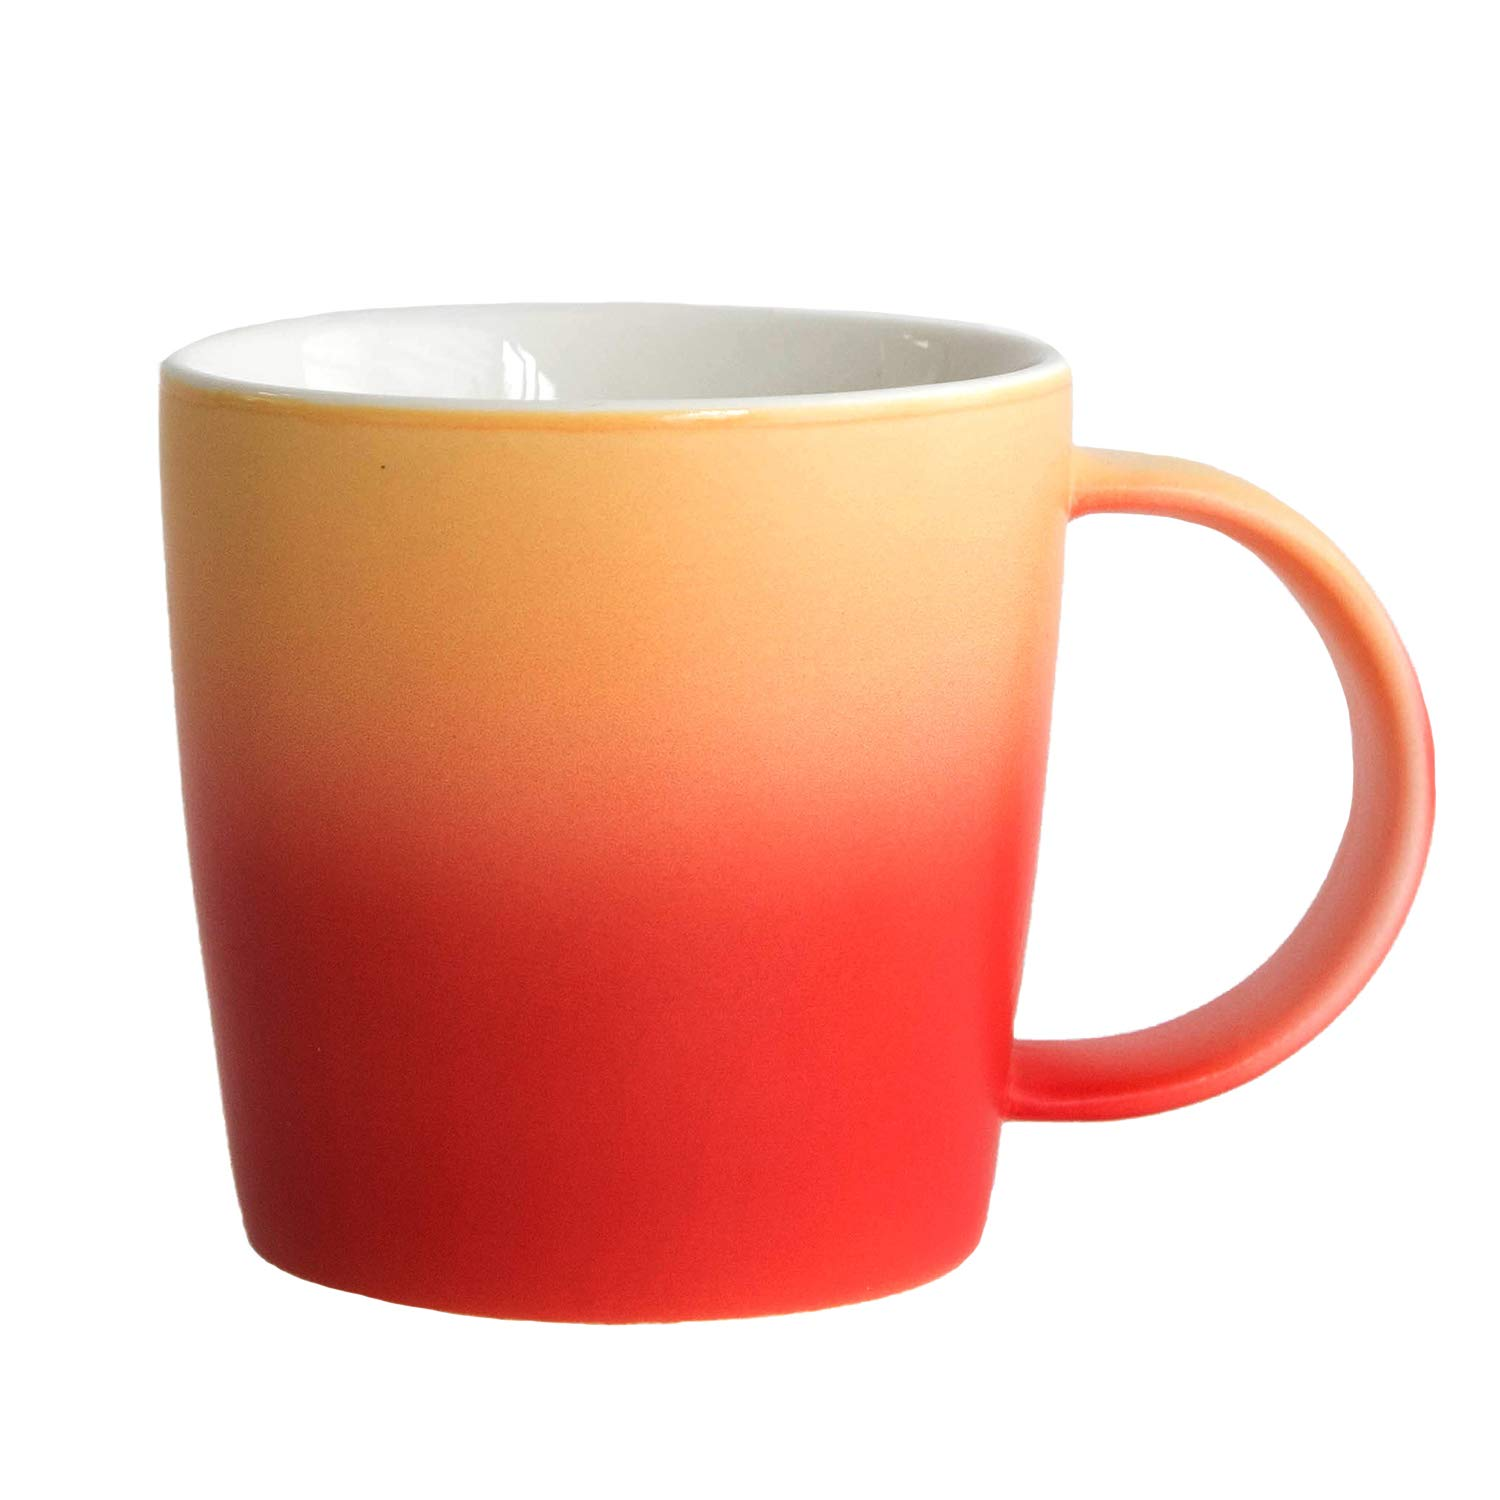 Ombré Color Collection (Magma - Red/Orange), Gradient Mug, Cool Coffee Mugs/Tea Cups,12oz Bone China, Dishwasher & Microwave Safe by Root7-2 Pack